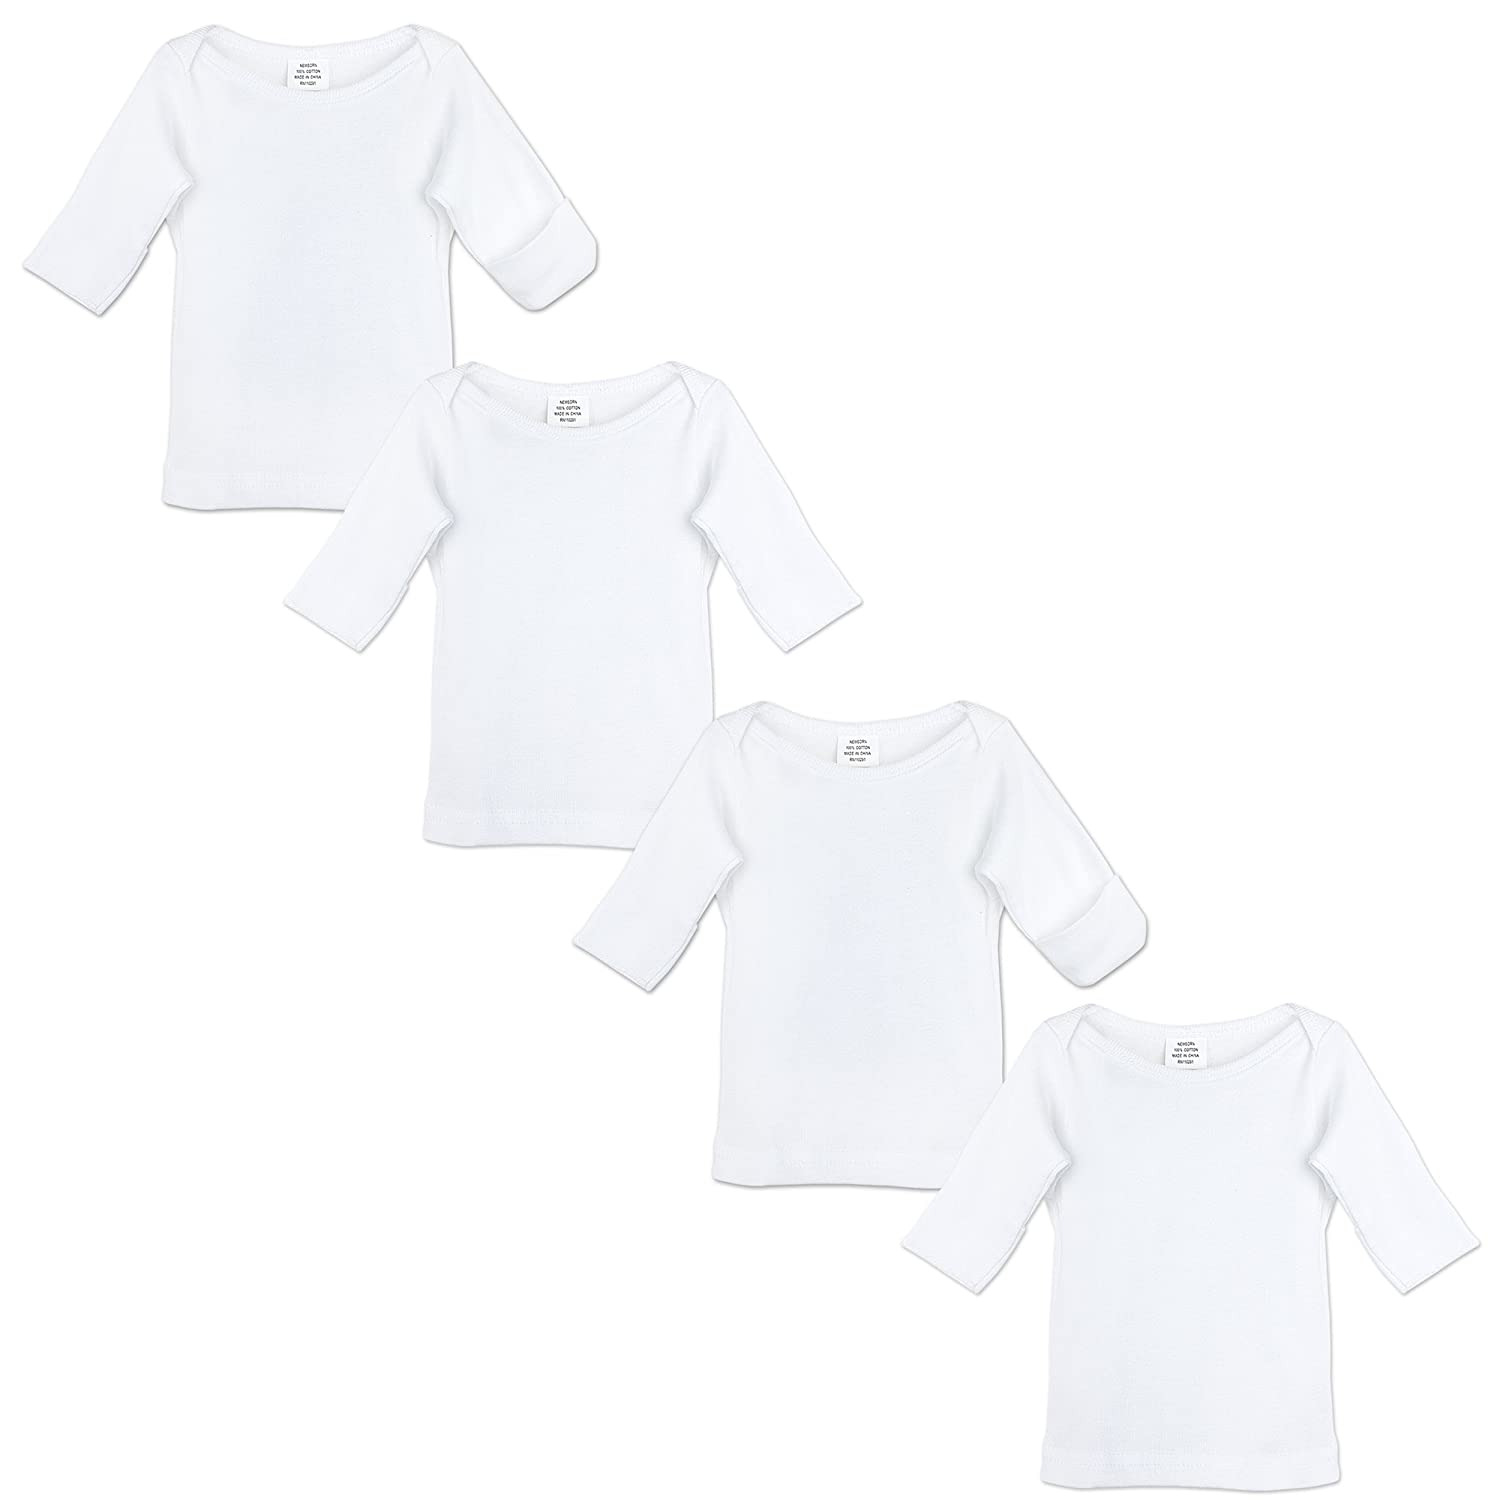 Newborn Long Sleeve T-Shirts (4-Pack) White Cotton Undershirts | Comfort Essentials | Girls & Boys Mitten Cuffs | 0-3 Months